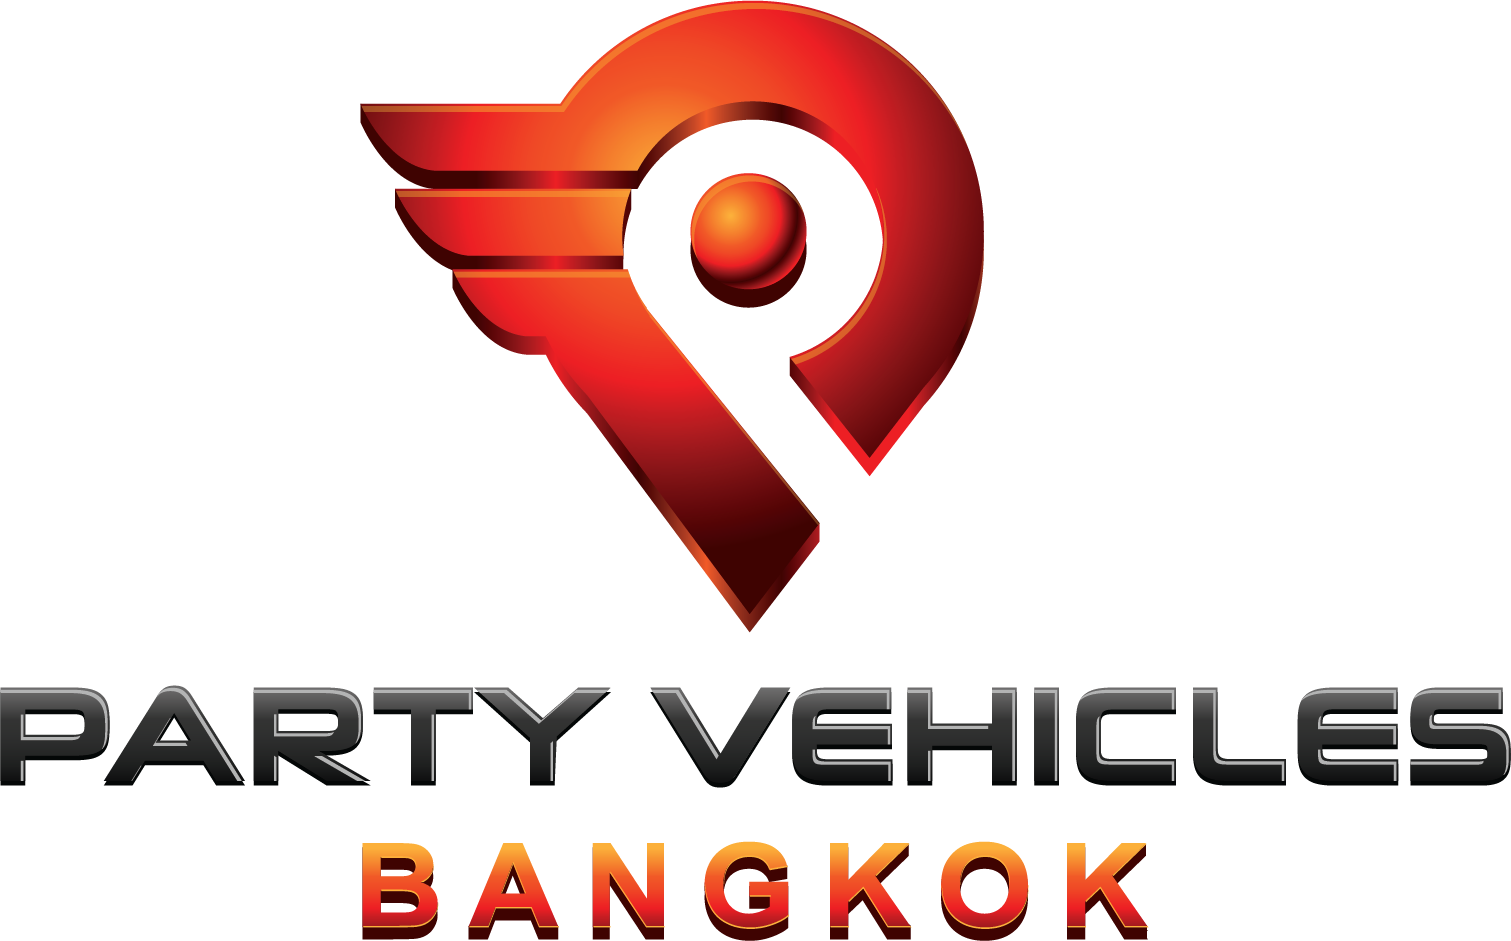 Party vehicles Bangkok